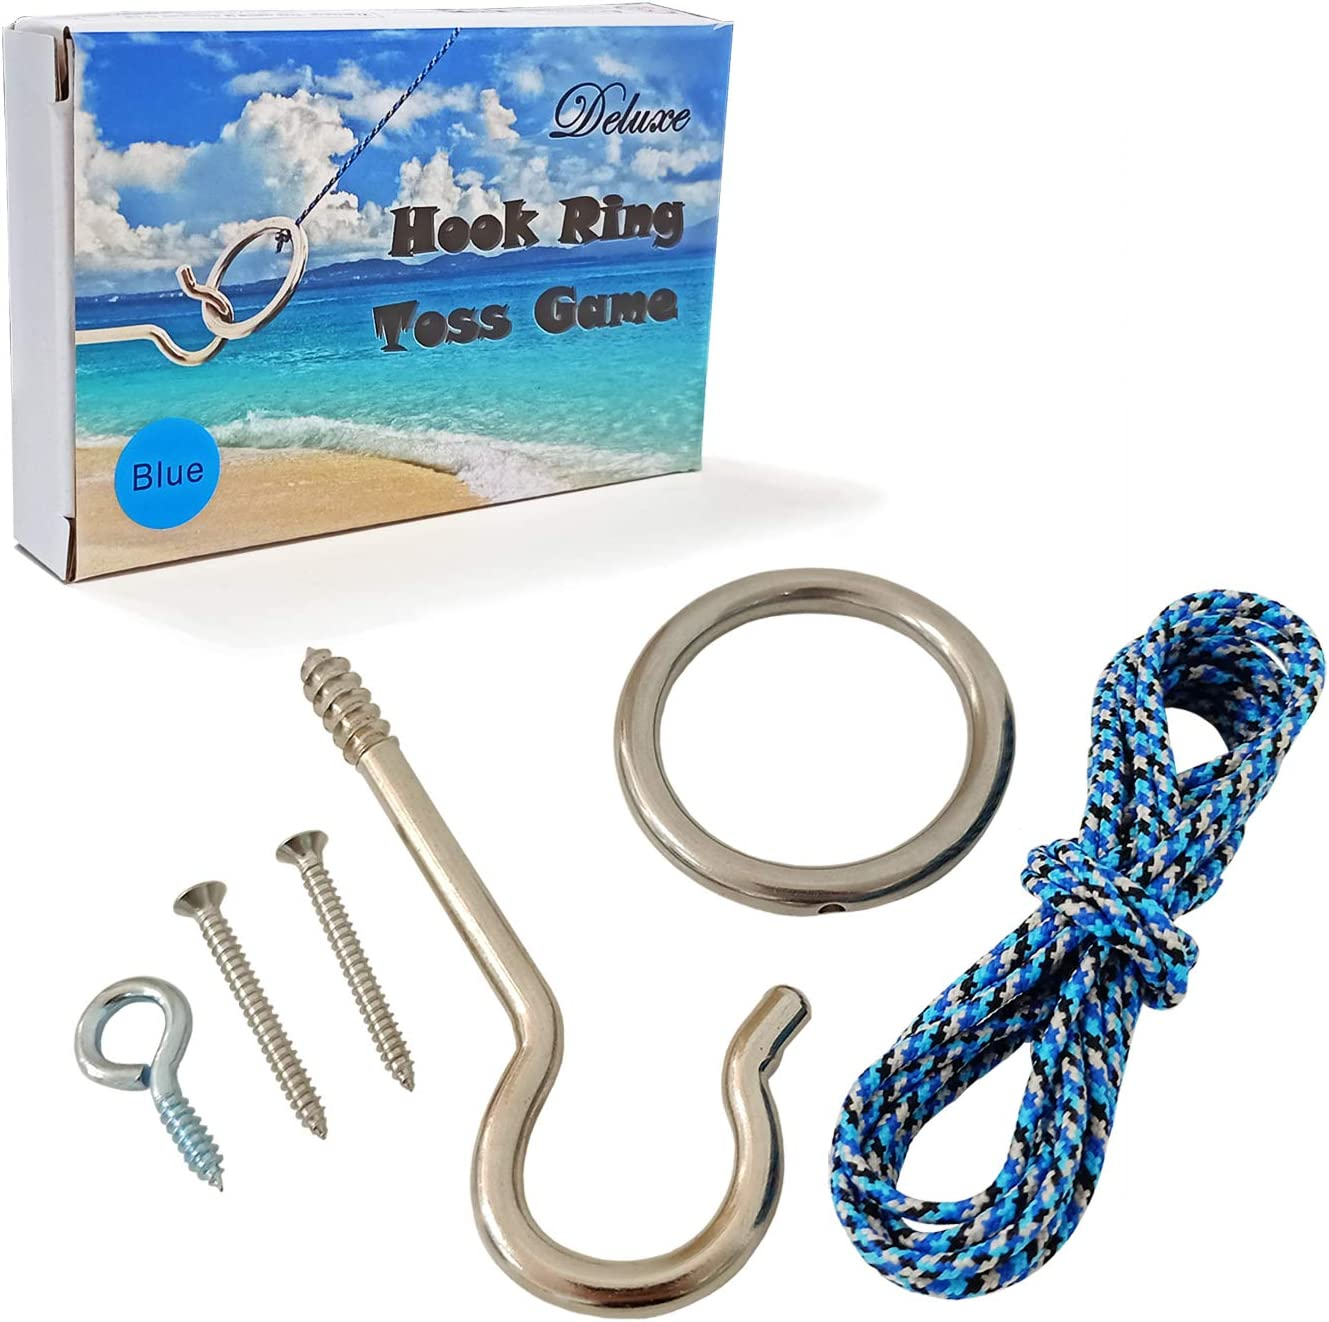 JACMOK Hook and Ring Toss Game Max 77% OFF Ranking TOP16 Games Target Famil for Throwing